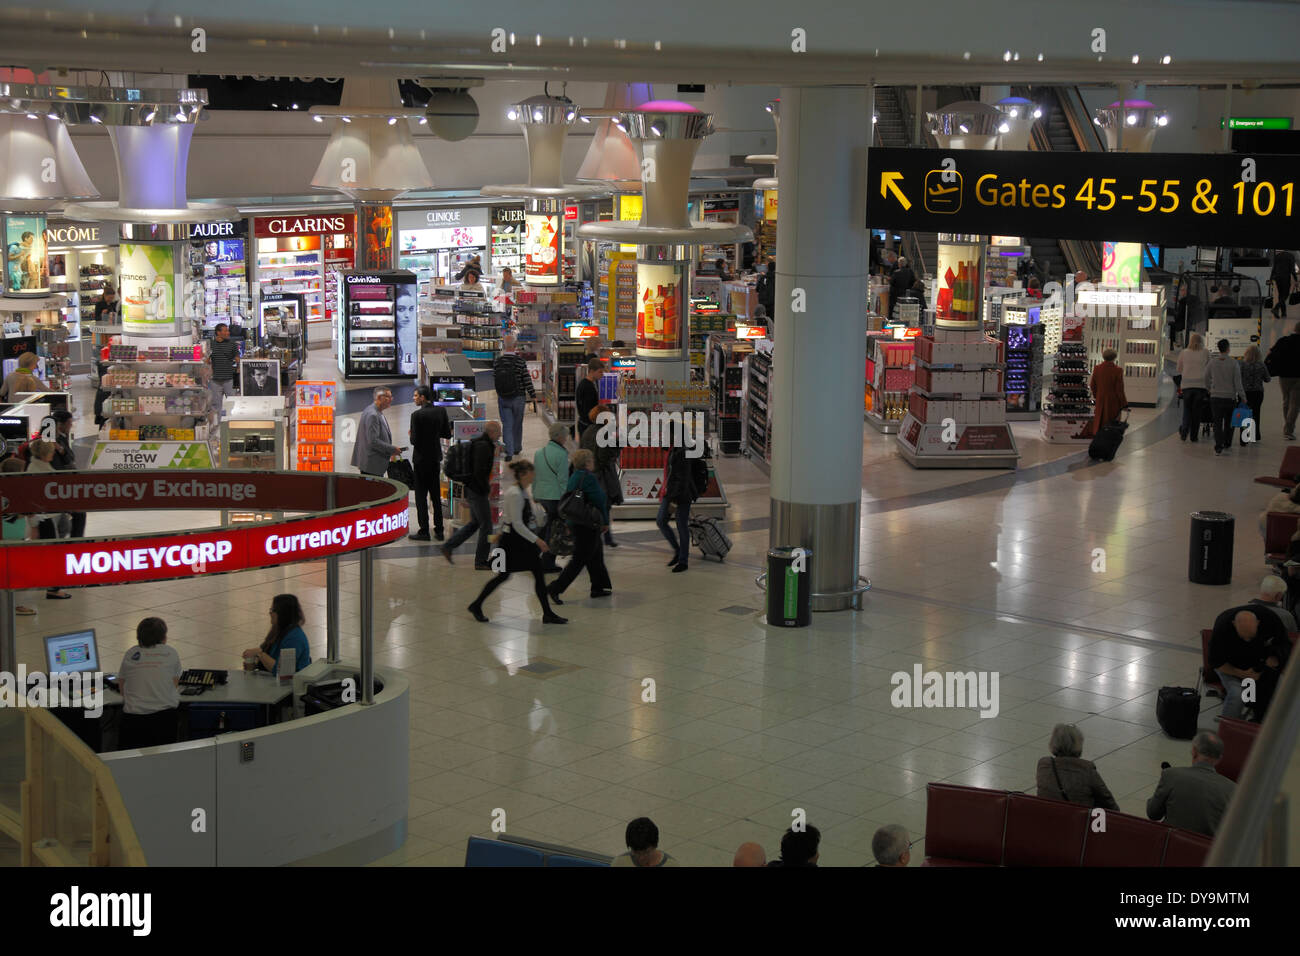 Duty Free Shops at Gatwick Airport - Stock Image